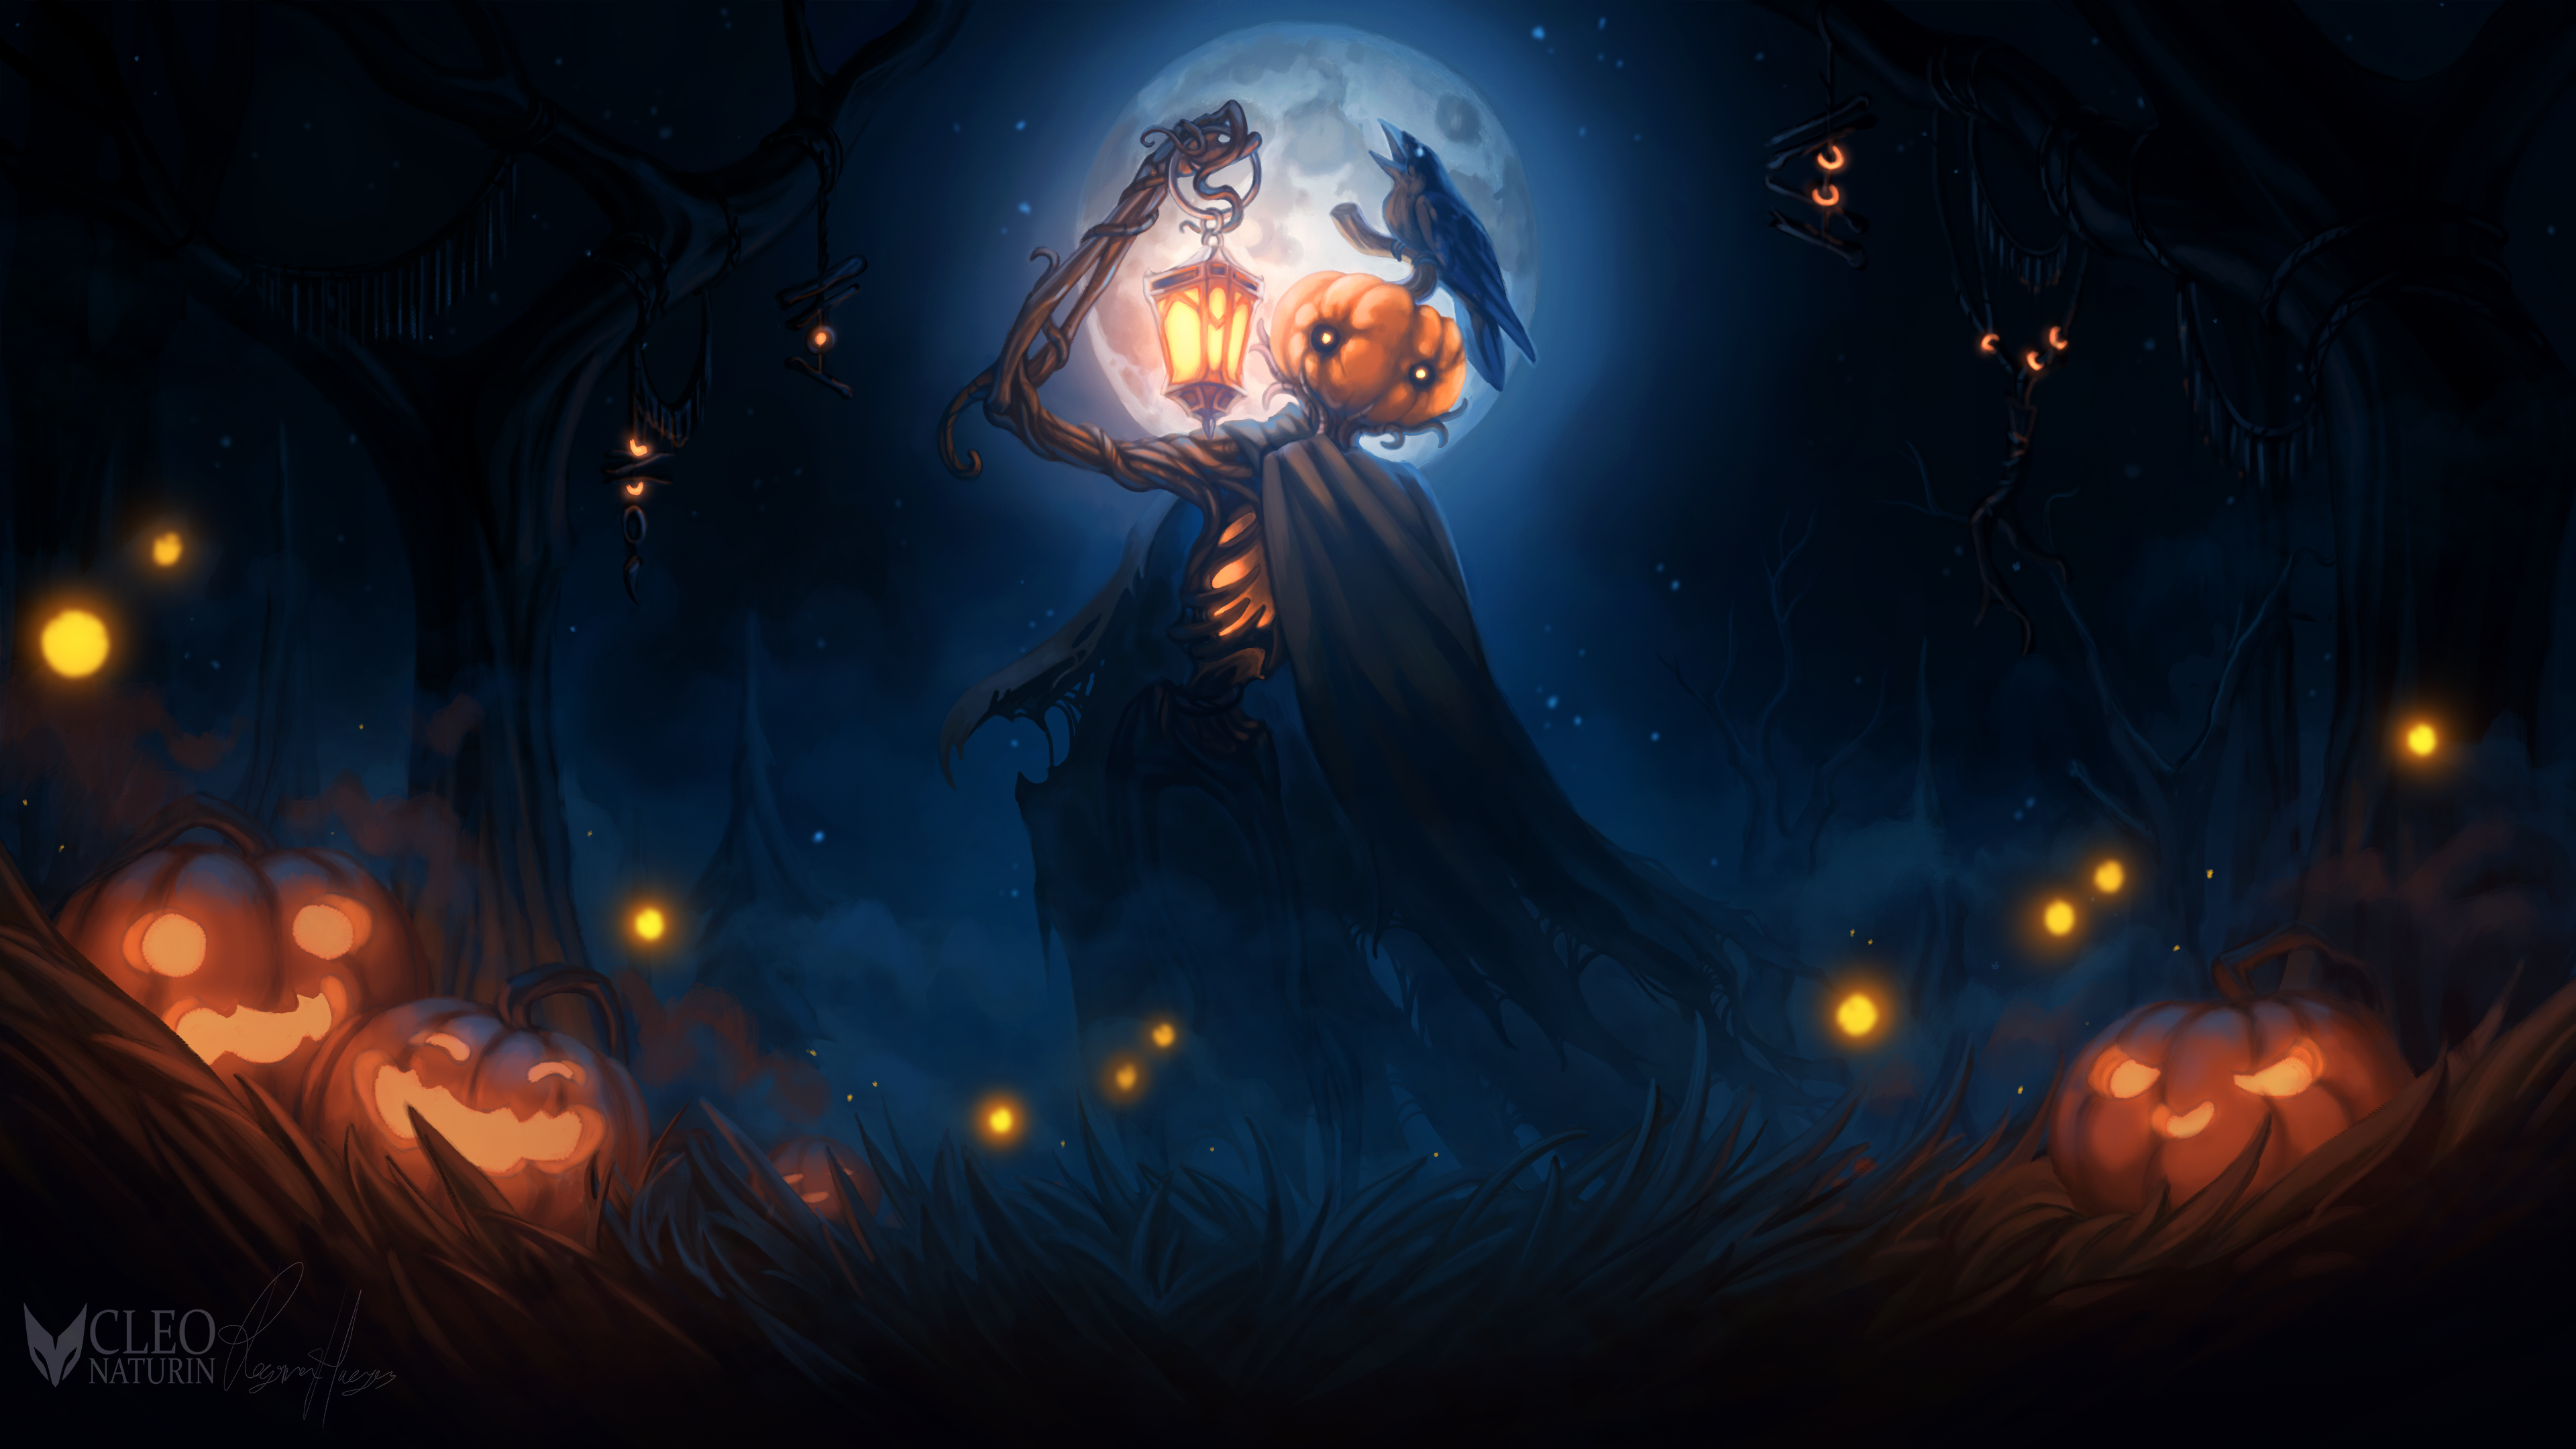 General 3840x2160 digital digital art artwork illustration drawing digital painting Halloween holiday spooky ambient atmosphere lights pumpkin Jack O' Lantern fantasy art dark dusk night lantern grass forest trees night sky Moon moonlight mist character design  fictional fictional character original characters people big boobs